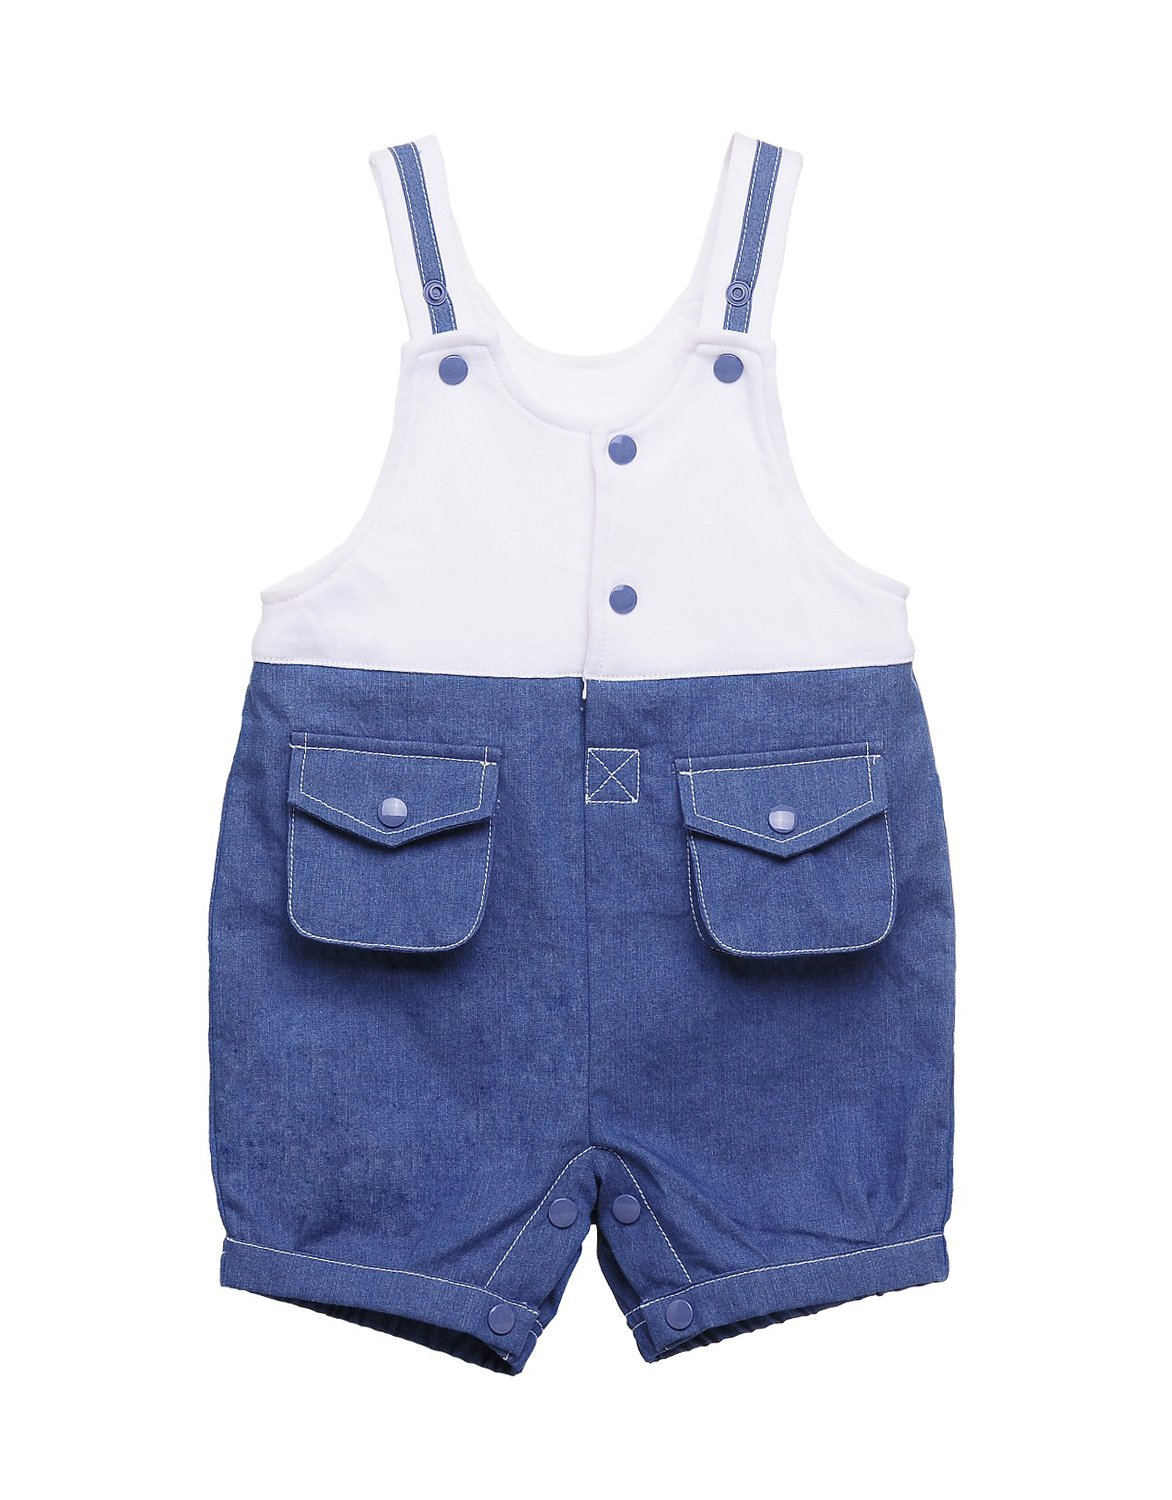 DEBAIJIA Kids Baby Boys Girls Knit Dungarees Bib Overalls Shorts Summer Clothes Outfits Pants Two Pockets